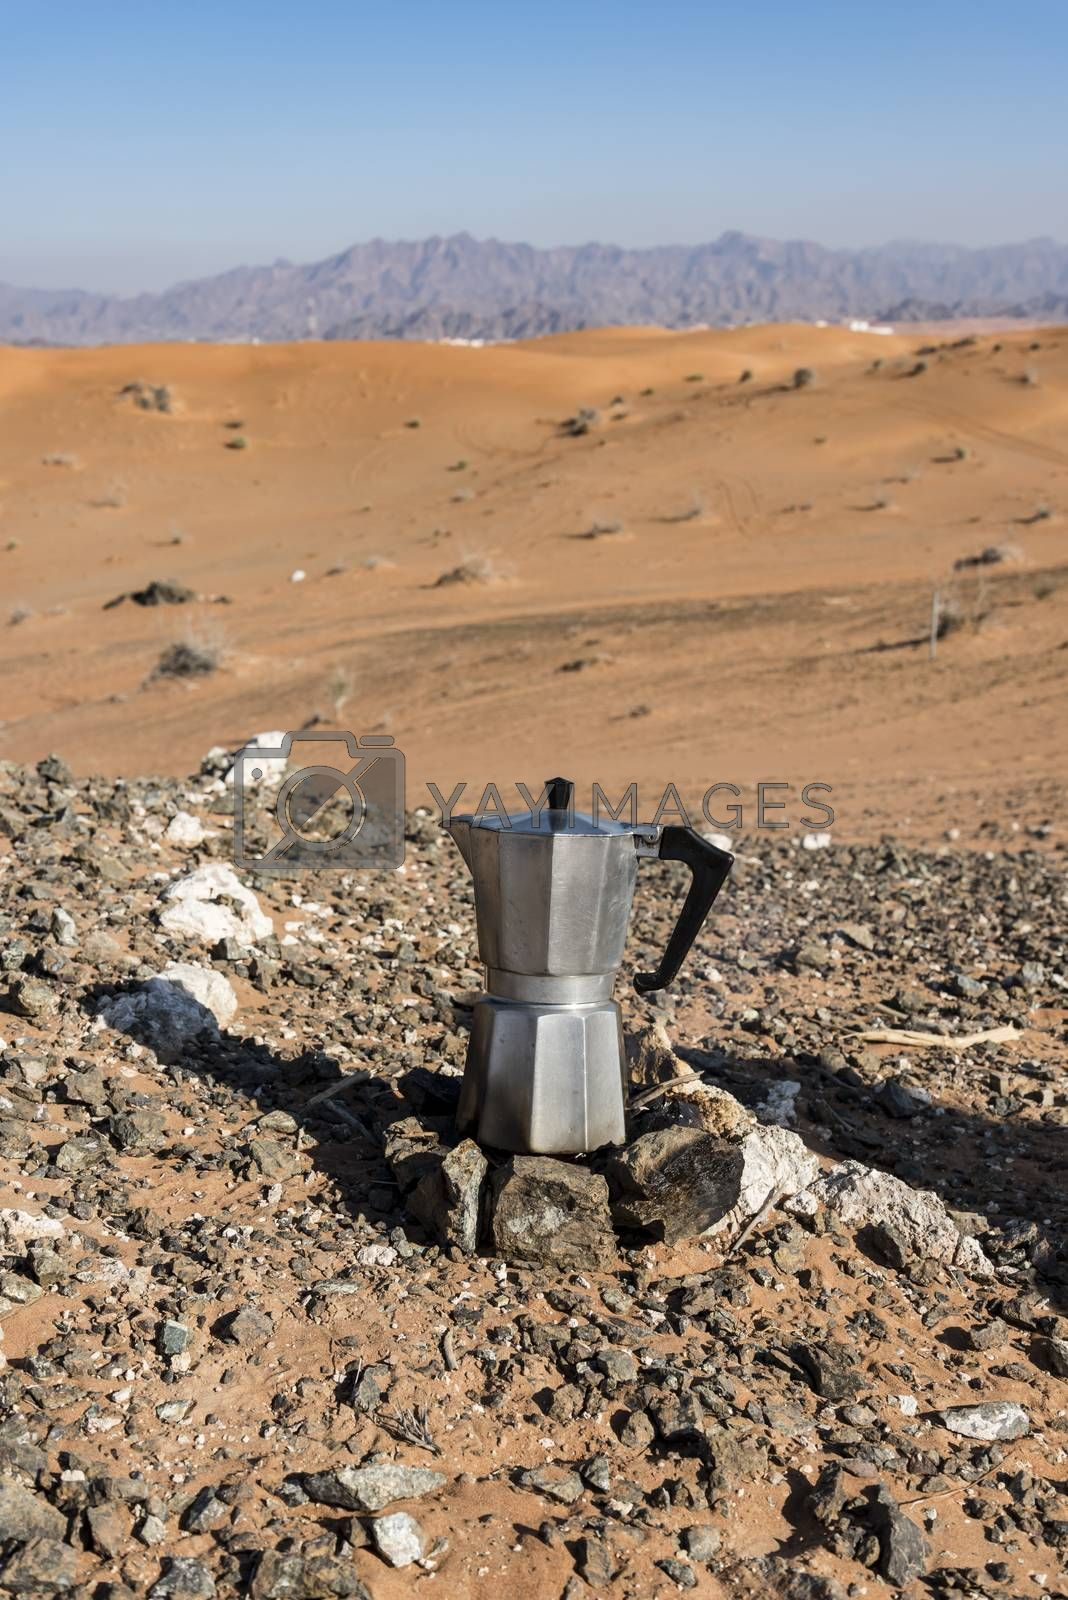 Italian Coffee maker at a fireplace in the desert by GABIS